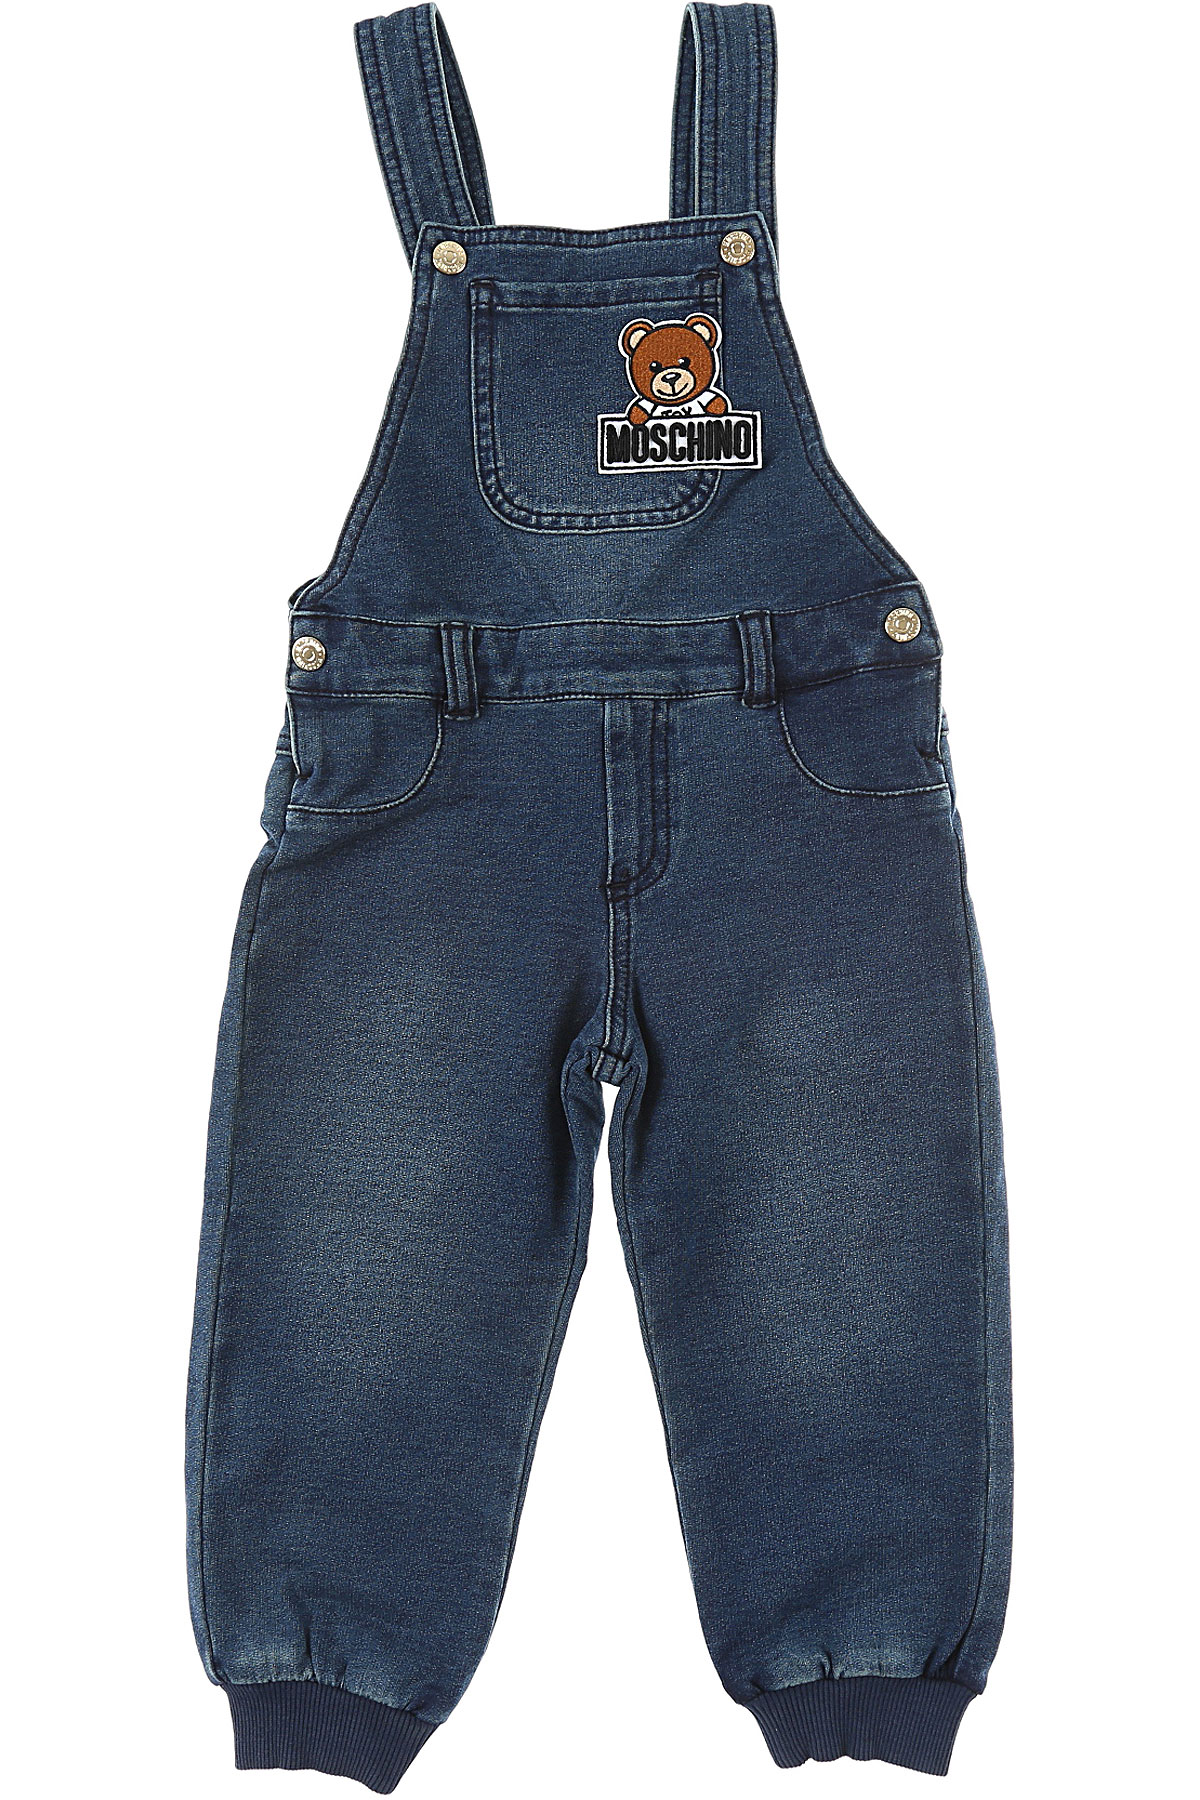 Moschino Baby Jeans for Boys, Dark Blue, Cotton, 2017, 24M 2Y 3Y 6M 9M USA-470076